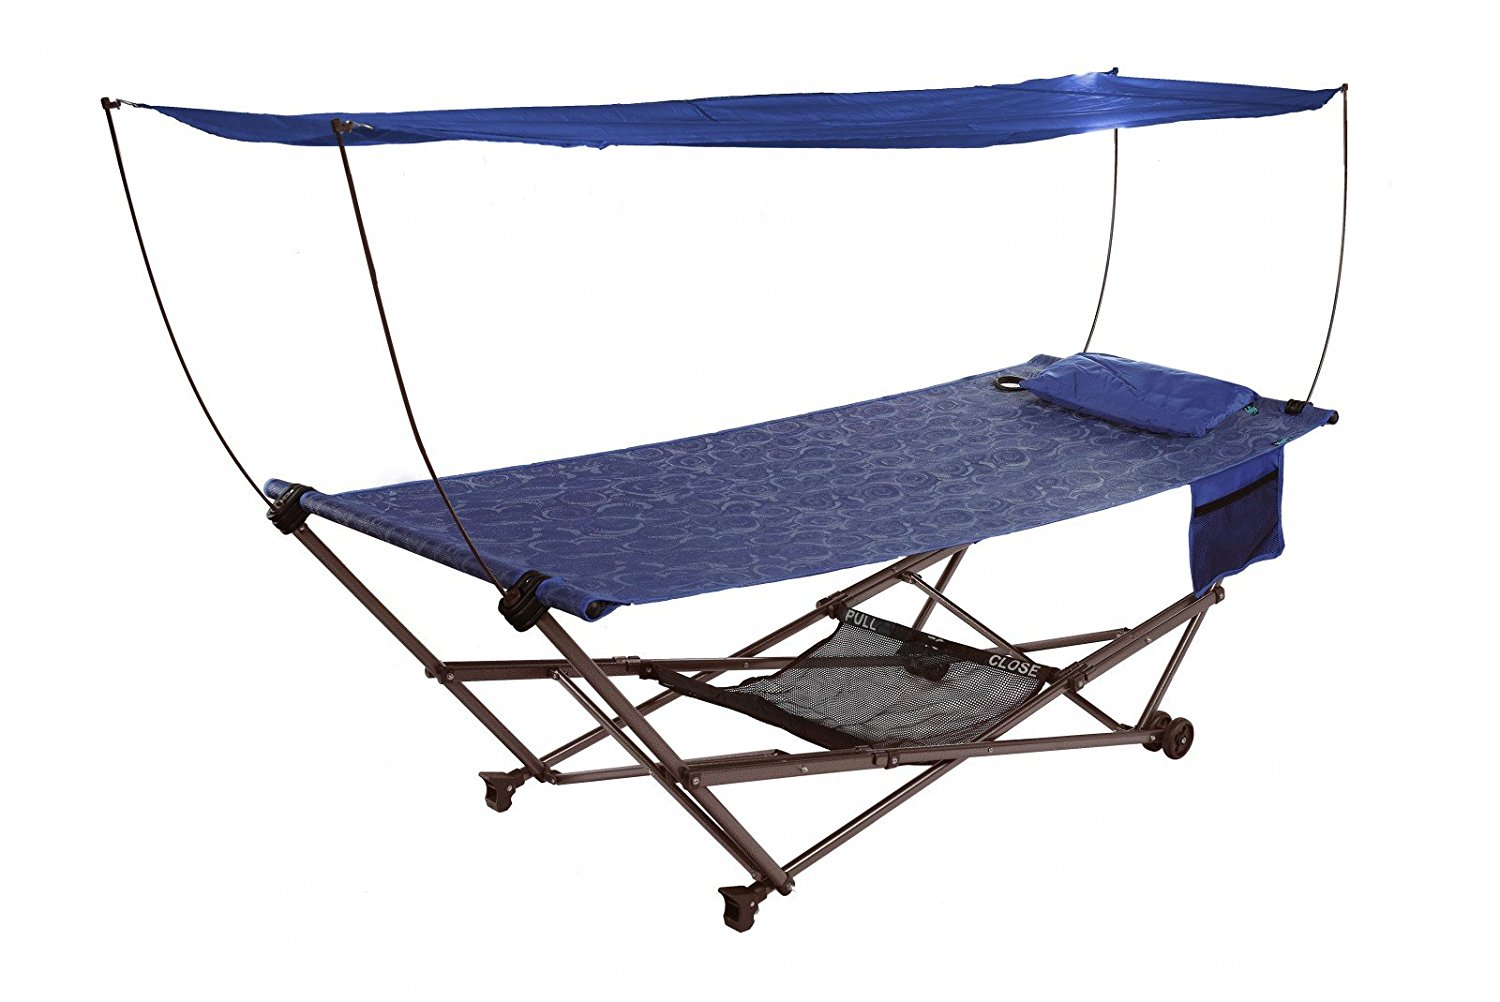 New Bliss Hammocks Stow Ez Hammock With 4 Pt Stand